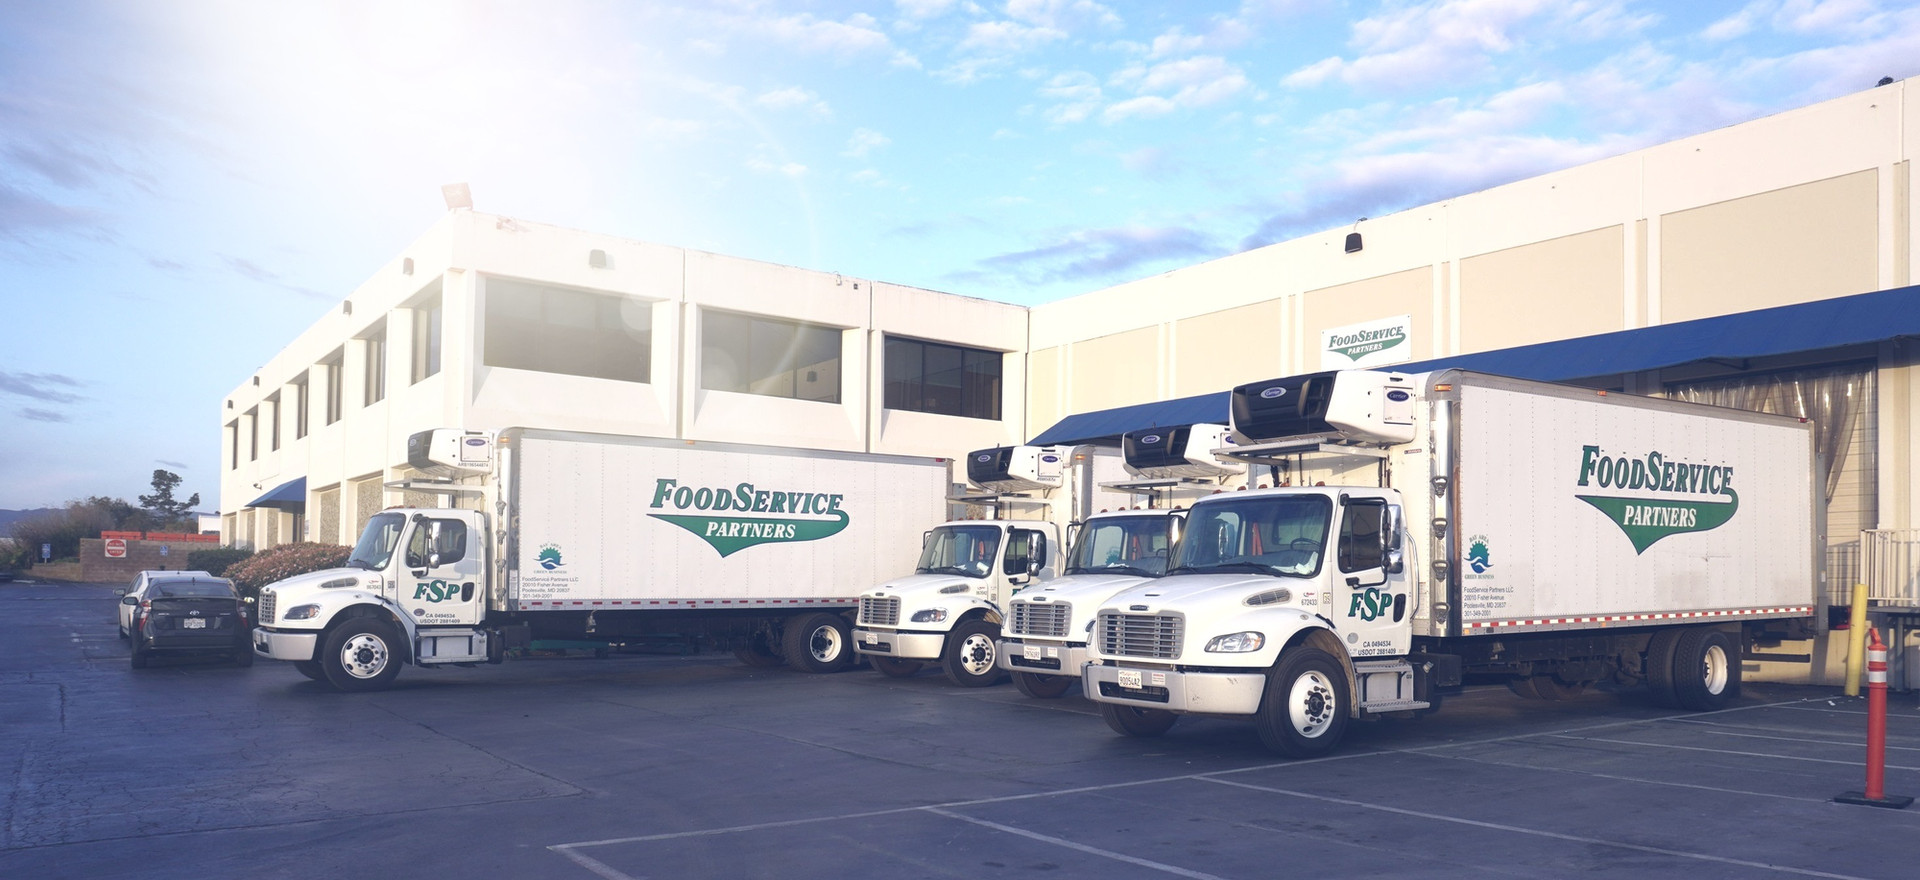 FoodService Partners of California